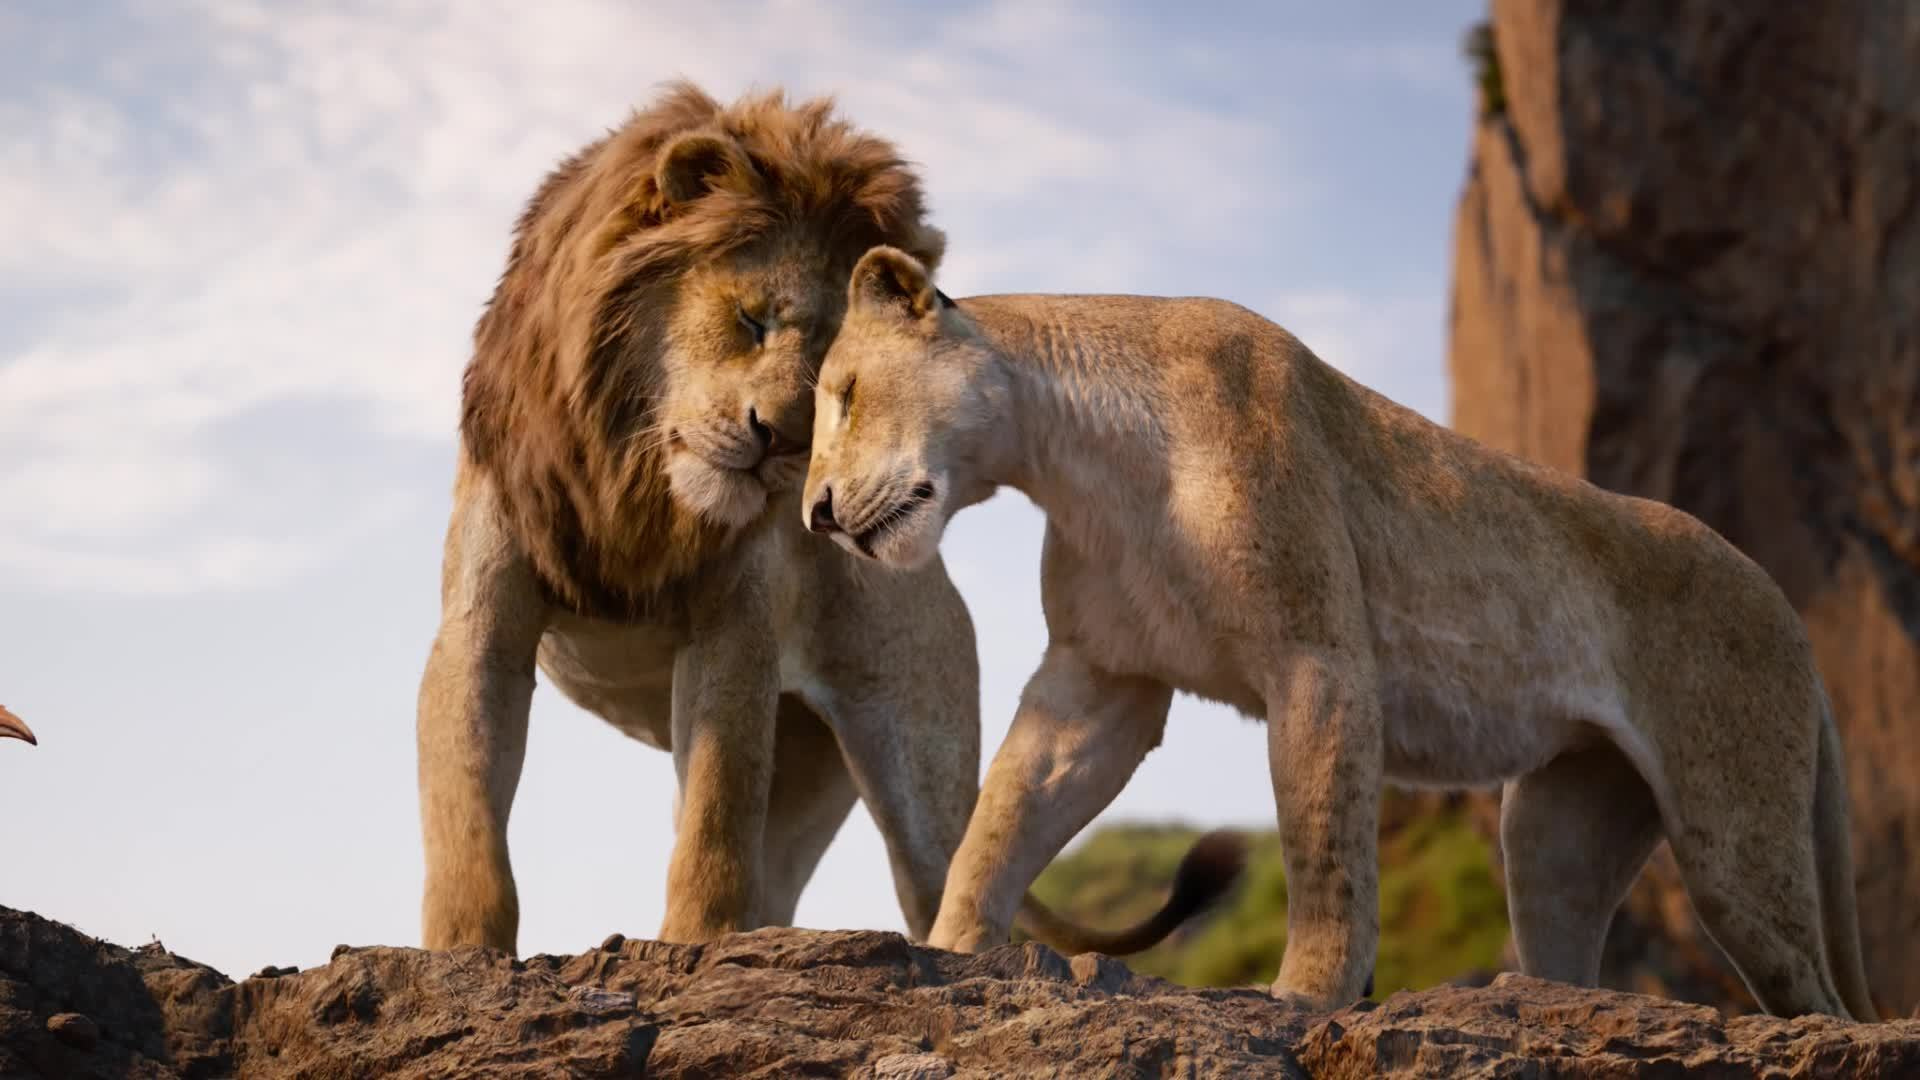 The Lion King |Take your place in the circle of life.